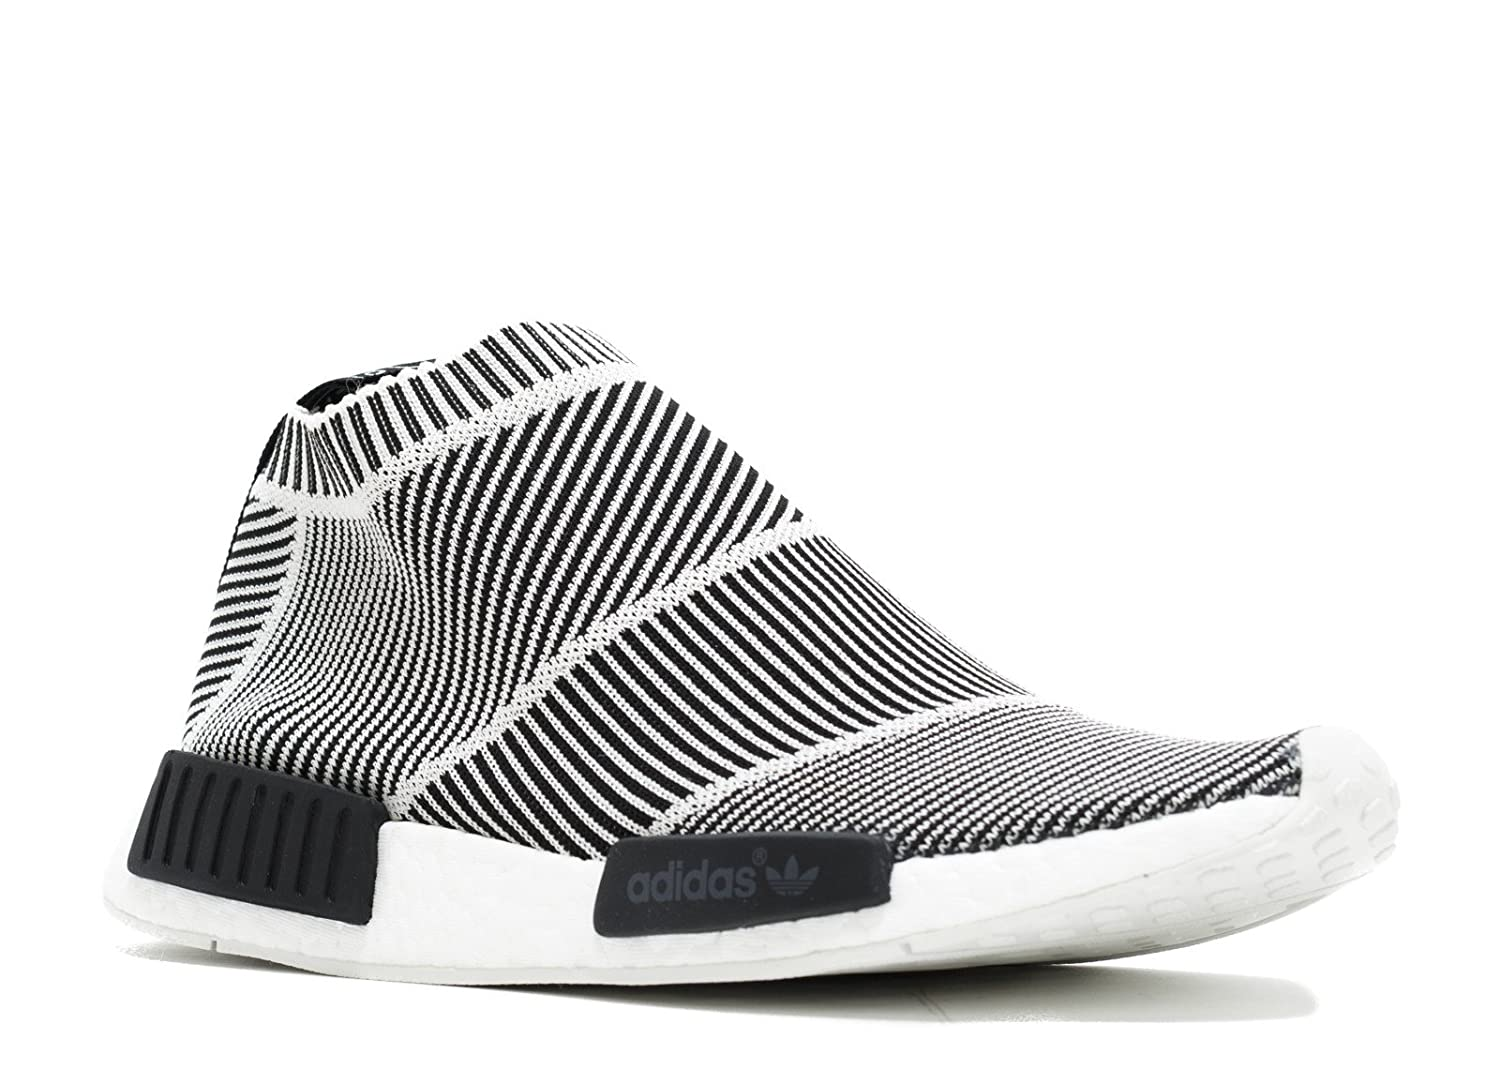 promo code dd36f d61cb Amazon.com | adidas NMD City Sock PK - S79150 - Size 8.5 | Shoes